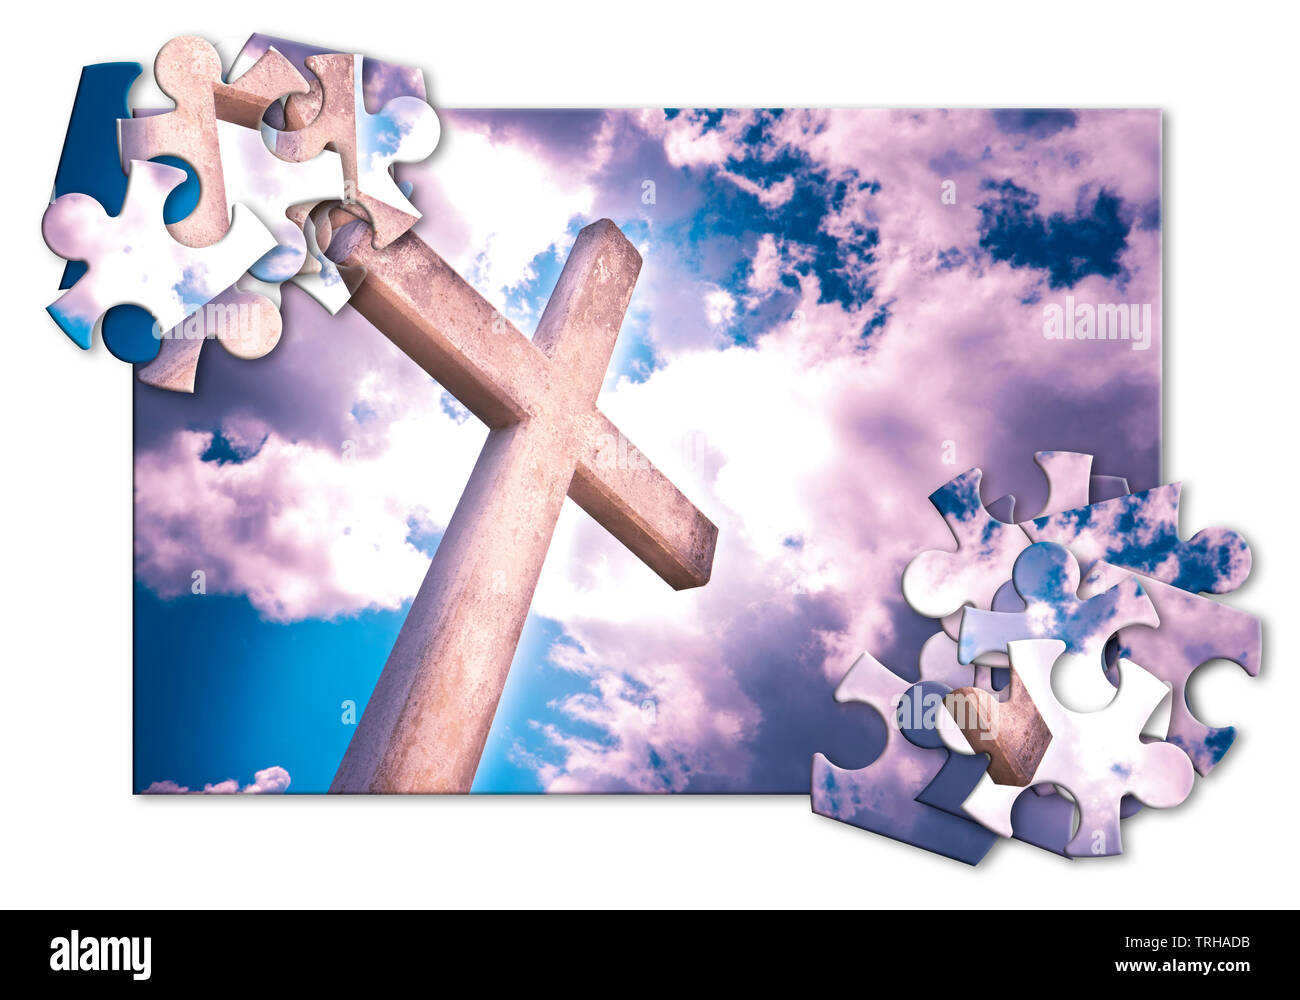 Rebuild our faith or losing faith - Christian cross against a cloudy sky - concept image in jigsaw puzzle shape - Stock Image